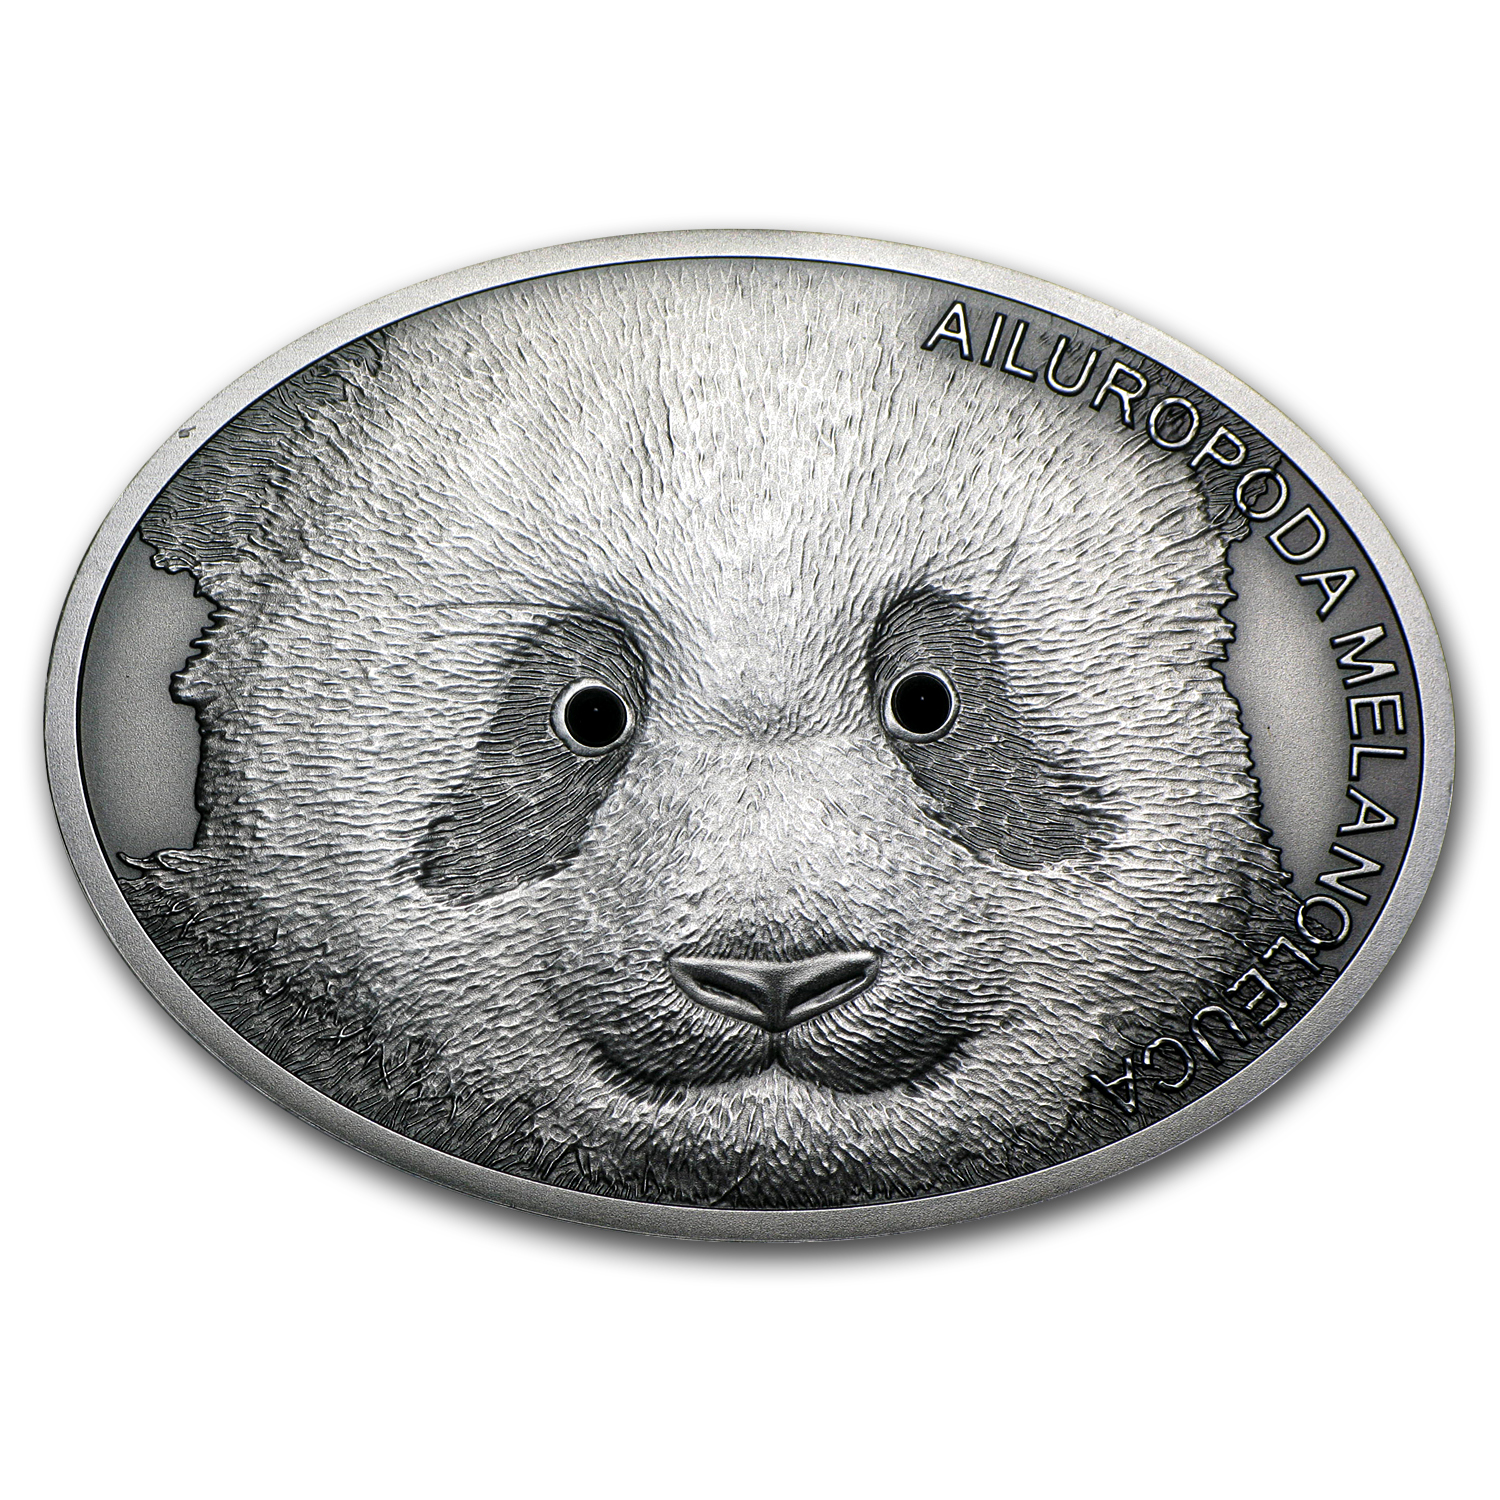 2013 Fiji 1 oz Silver $10 Fascinating Wildlife Giant Panda